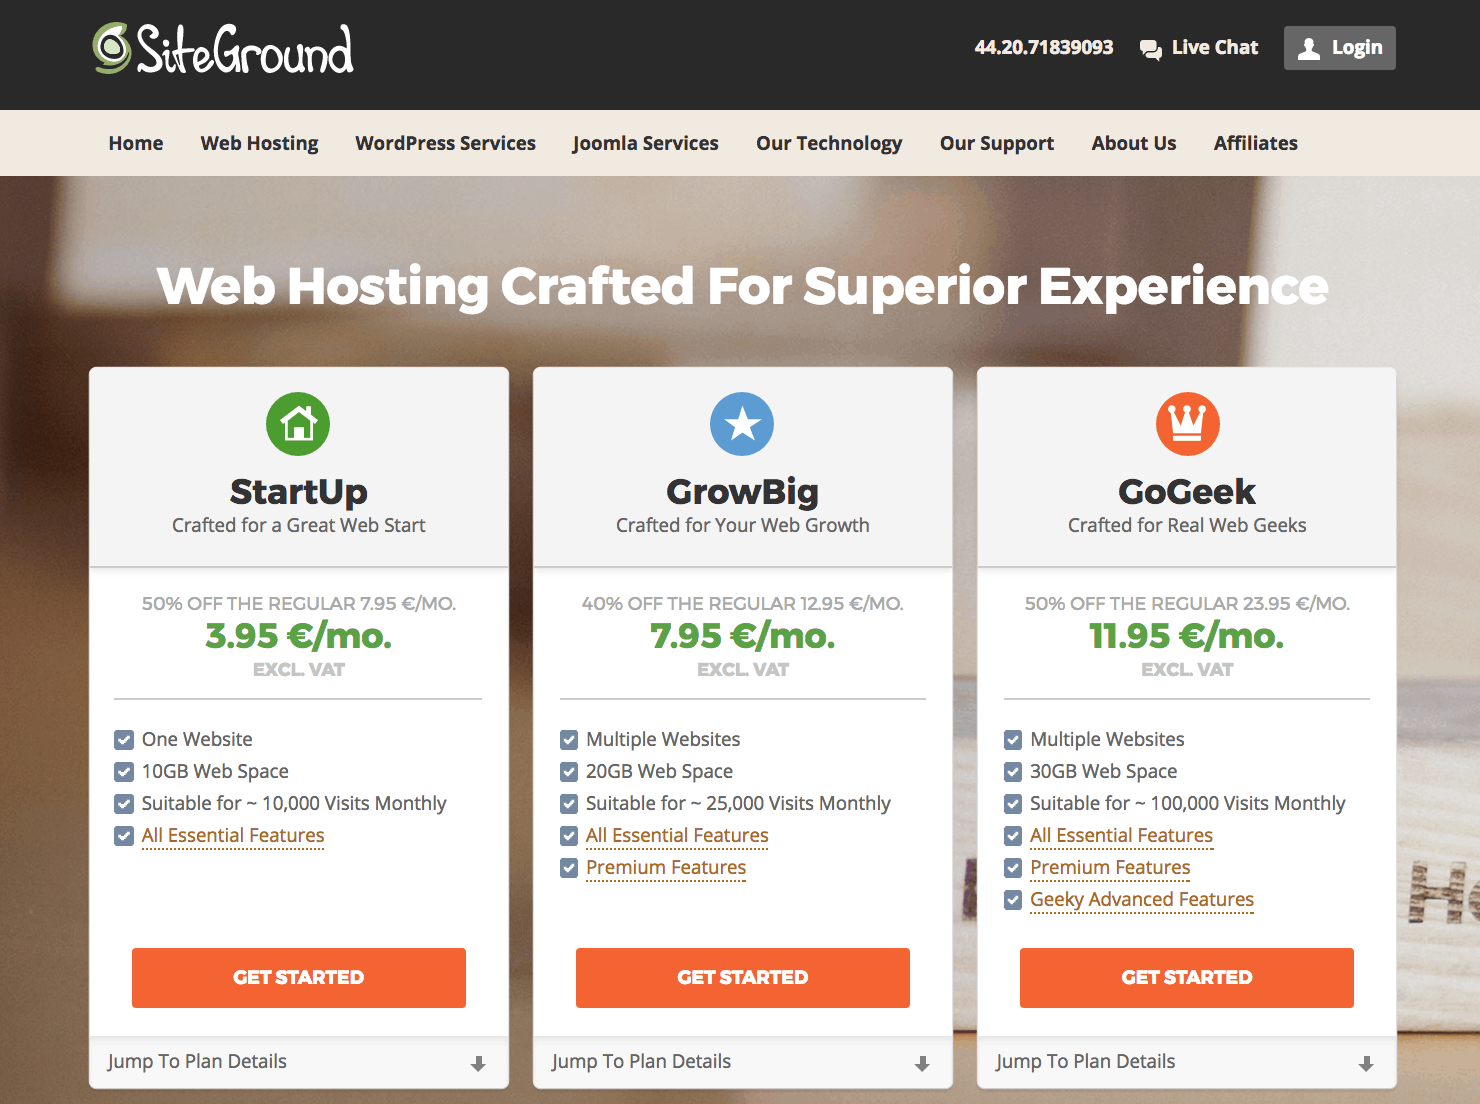 shared hosting discount coupons for siteground January